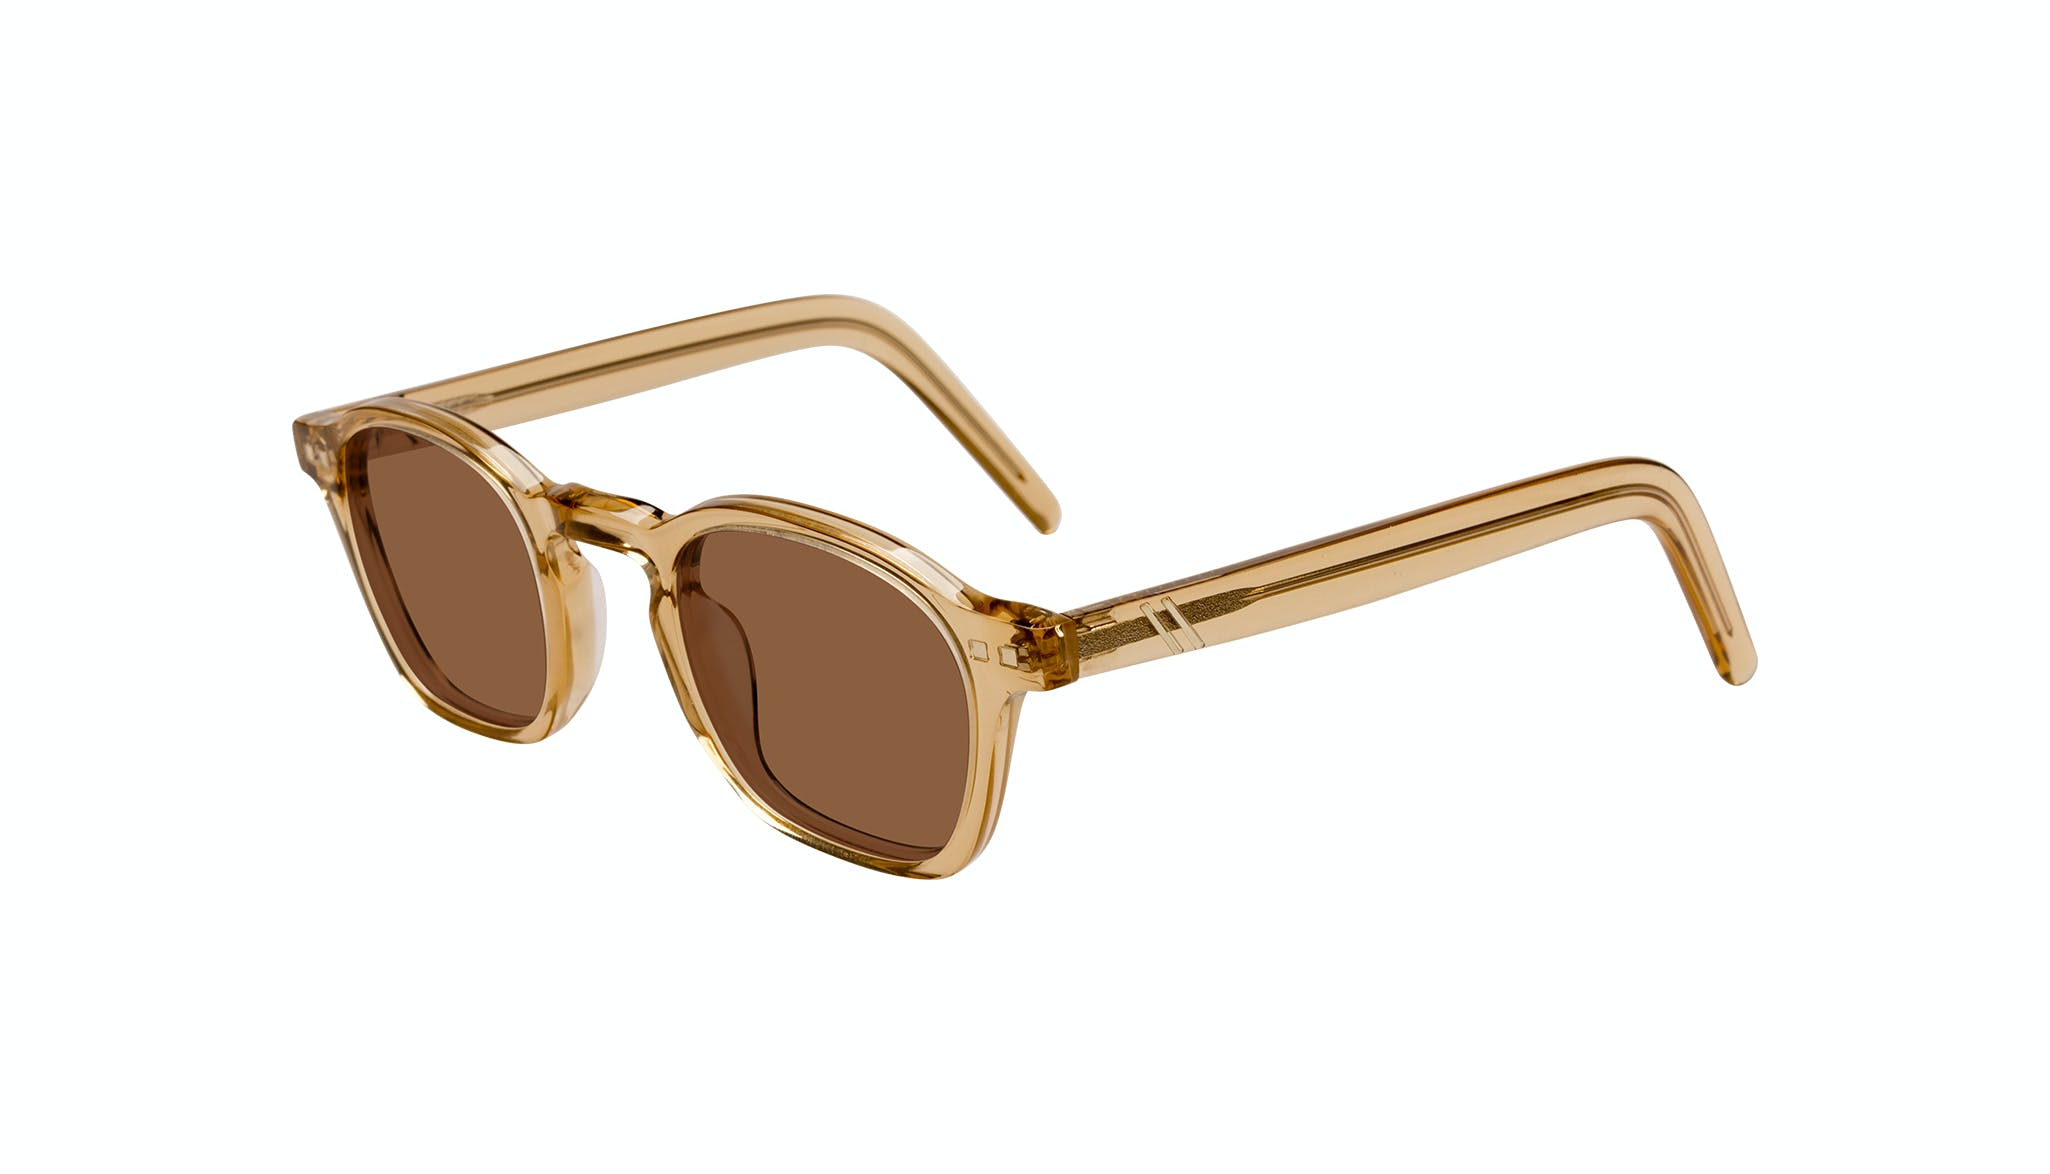 Affordable Fashion Glasses Square Sunglasses Men Brisk Golden Tilt